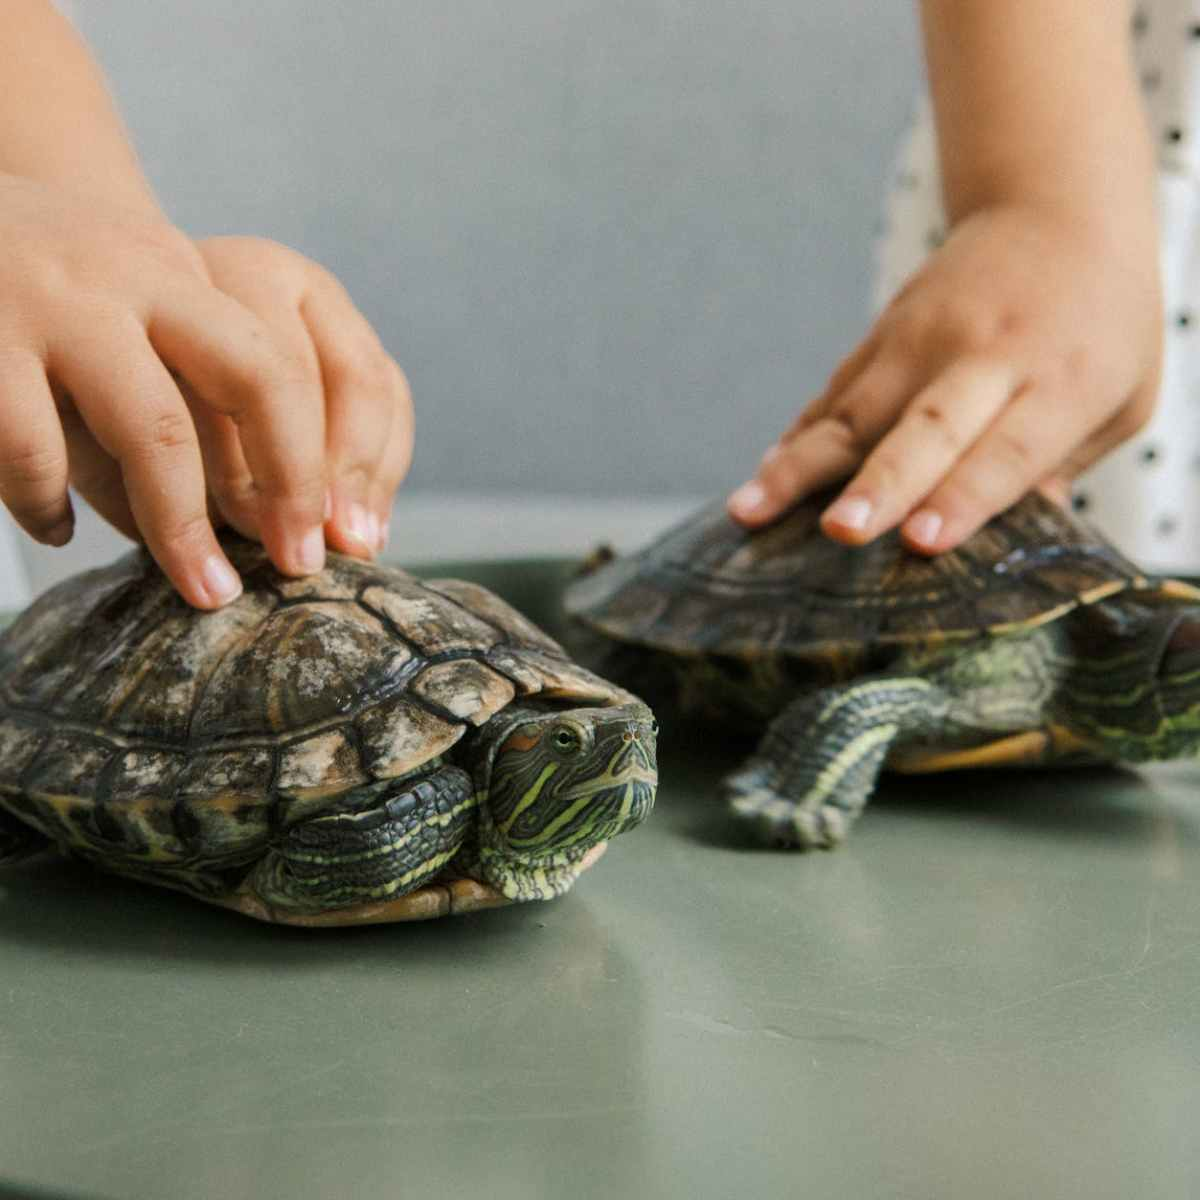 person holding turtle on table